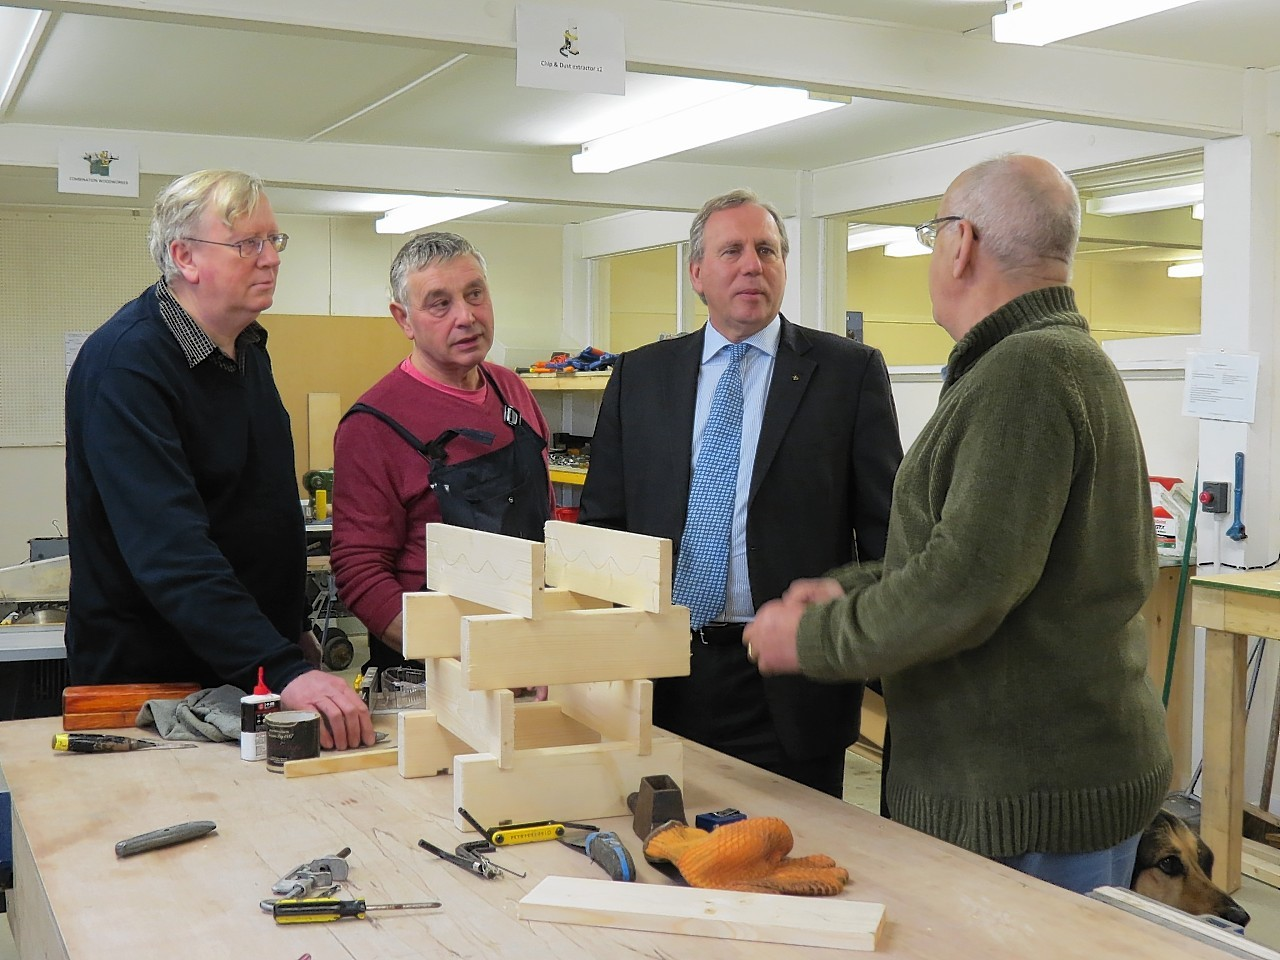 Westhill Men's Shed: Nick Pilbeam, Lui Forno, Dennis Robertson MSP, Mike Benzie